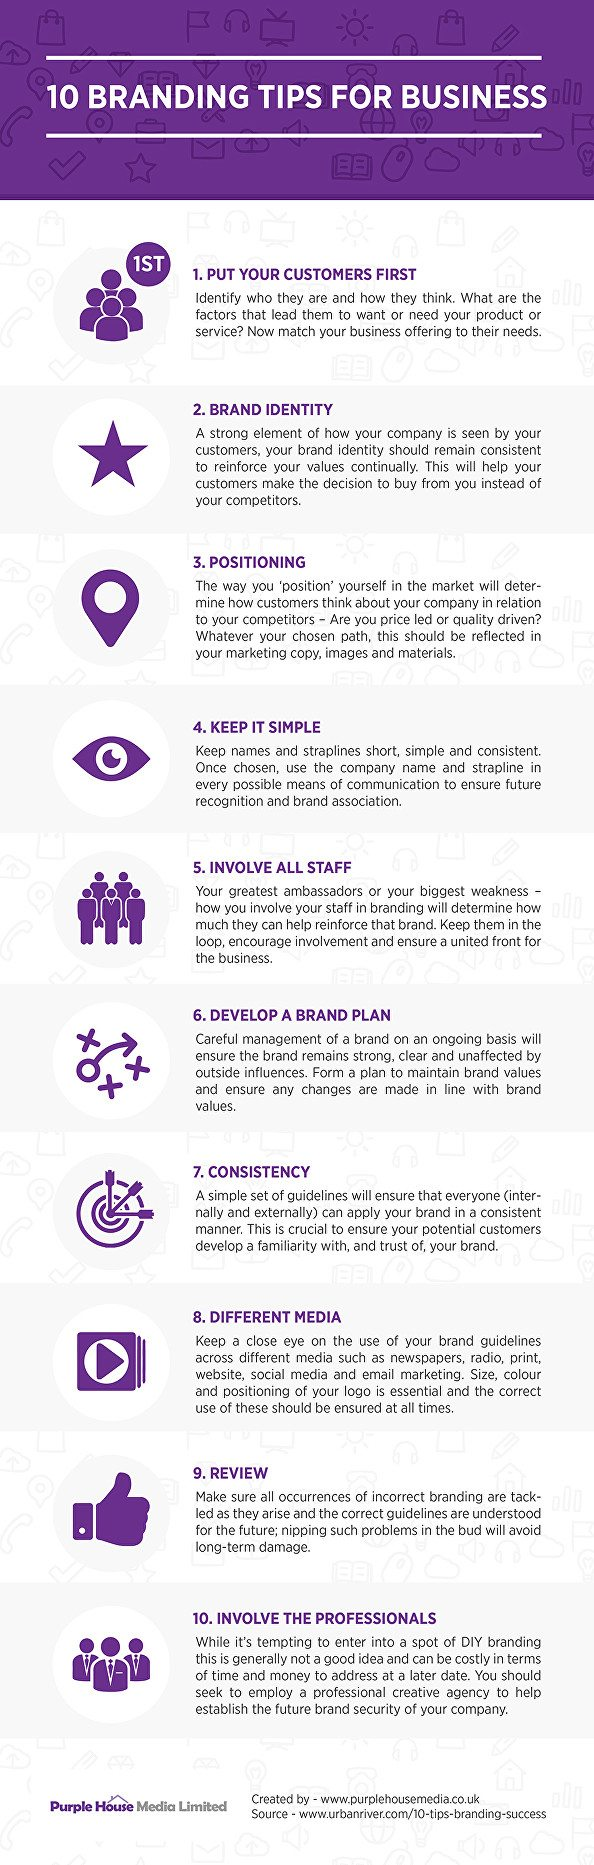 Top 10 branding tips to drive your business to success